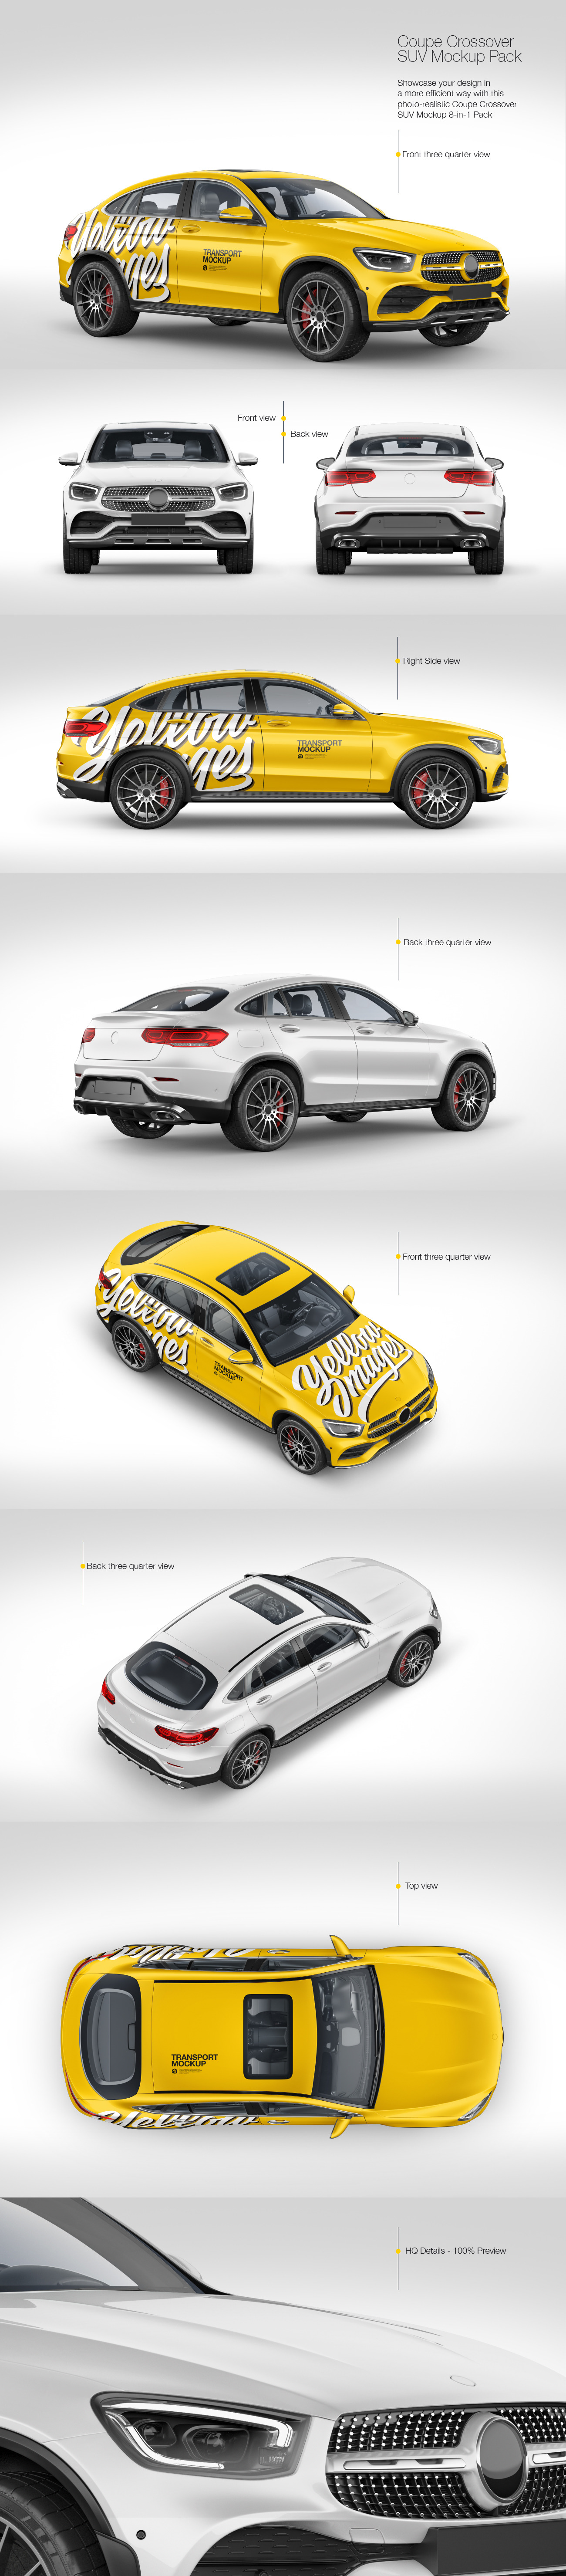 Coupe Crossover SUV Mockup Pack